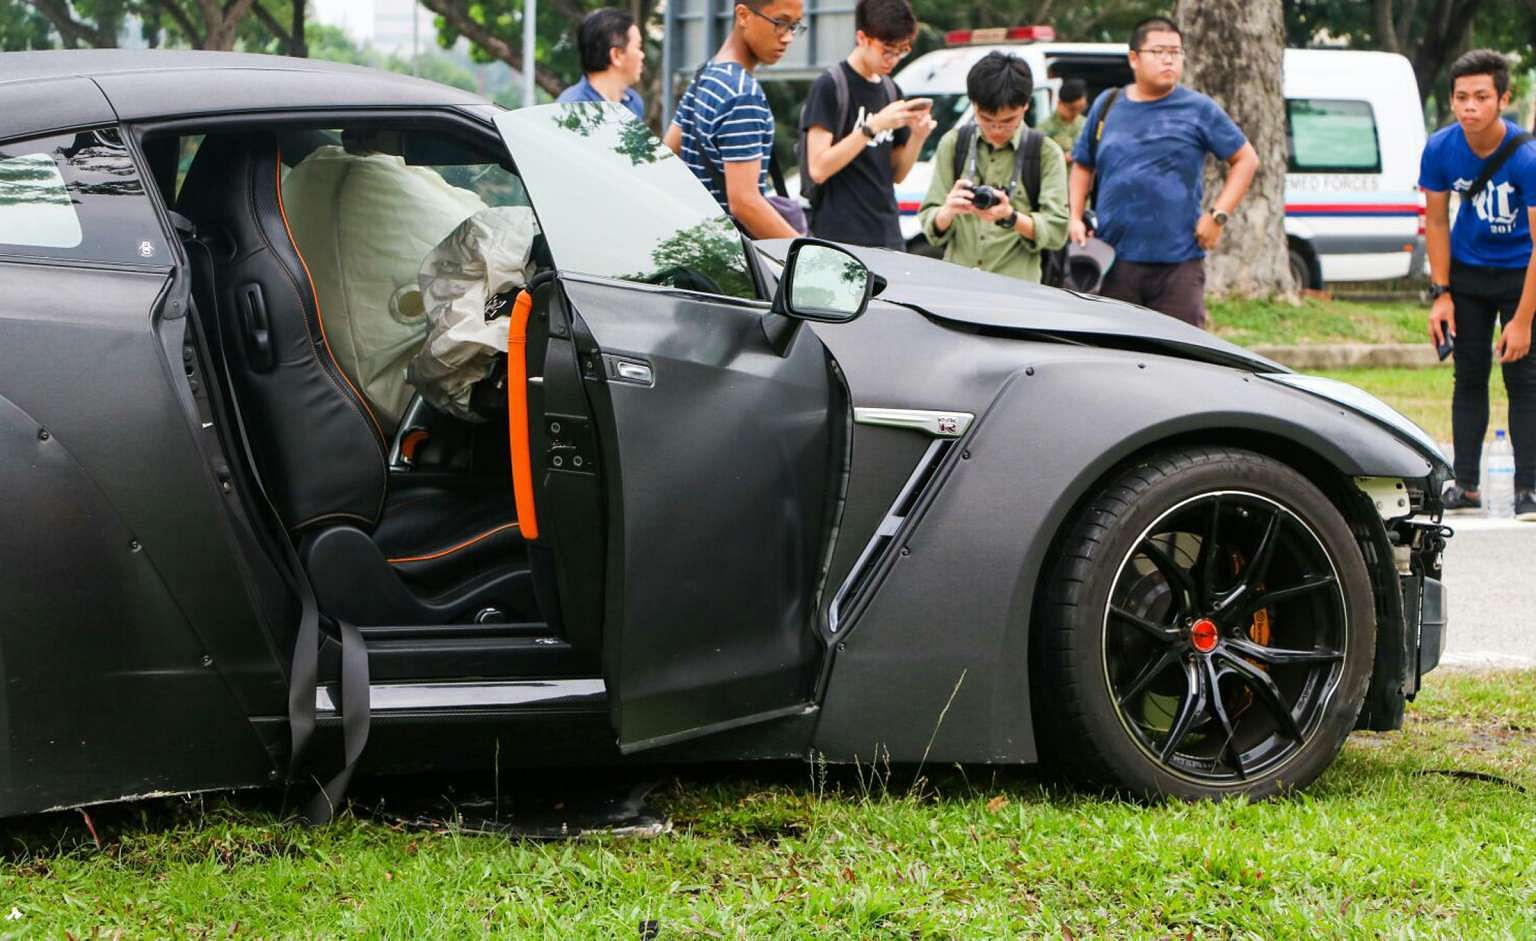 Teen Who Crashed Nissan GTR Into Car At Kallang Walk Charged With Causing  Grievous Hurt, Courts U0026 Crime News U0026 Top Stories   The Straits Times